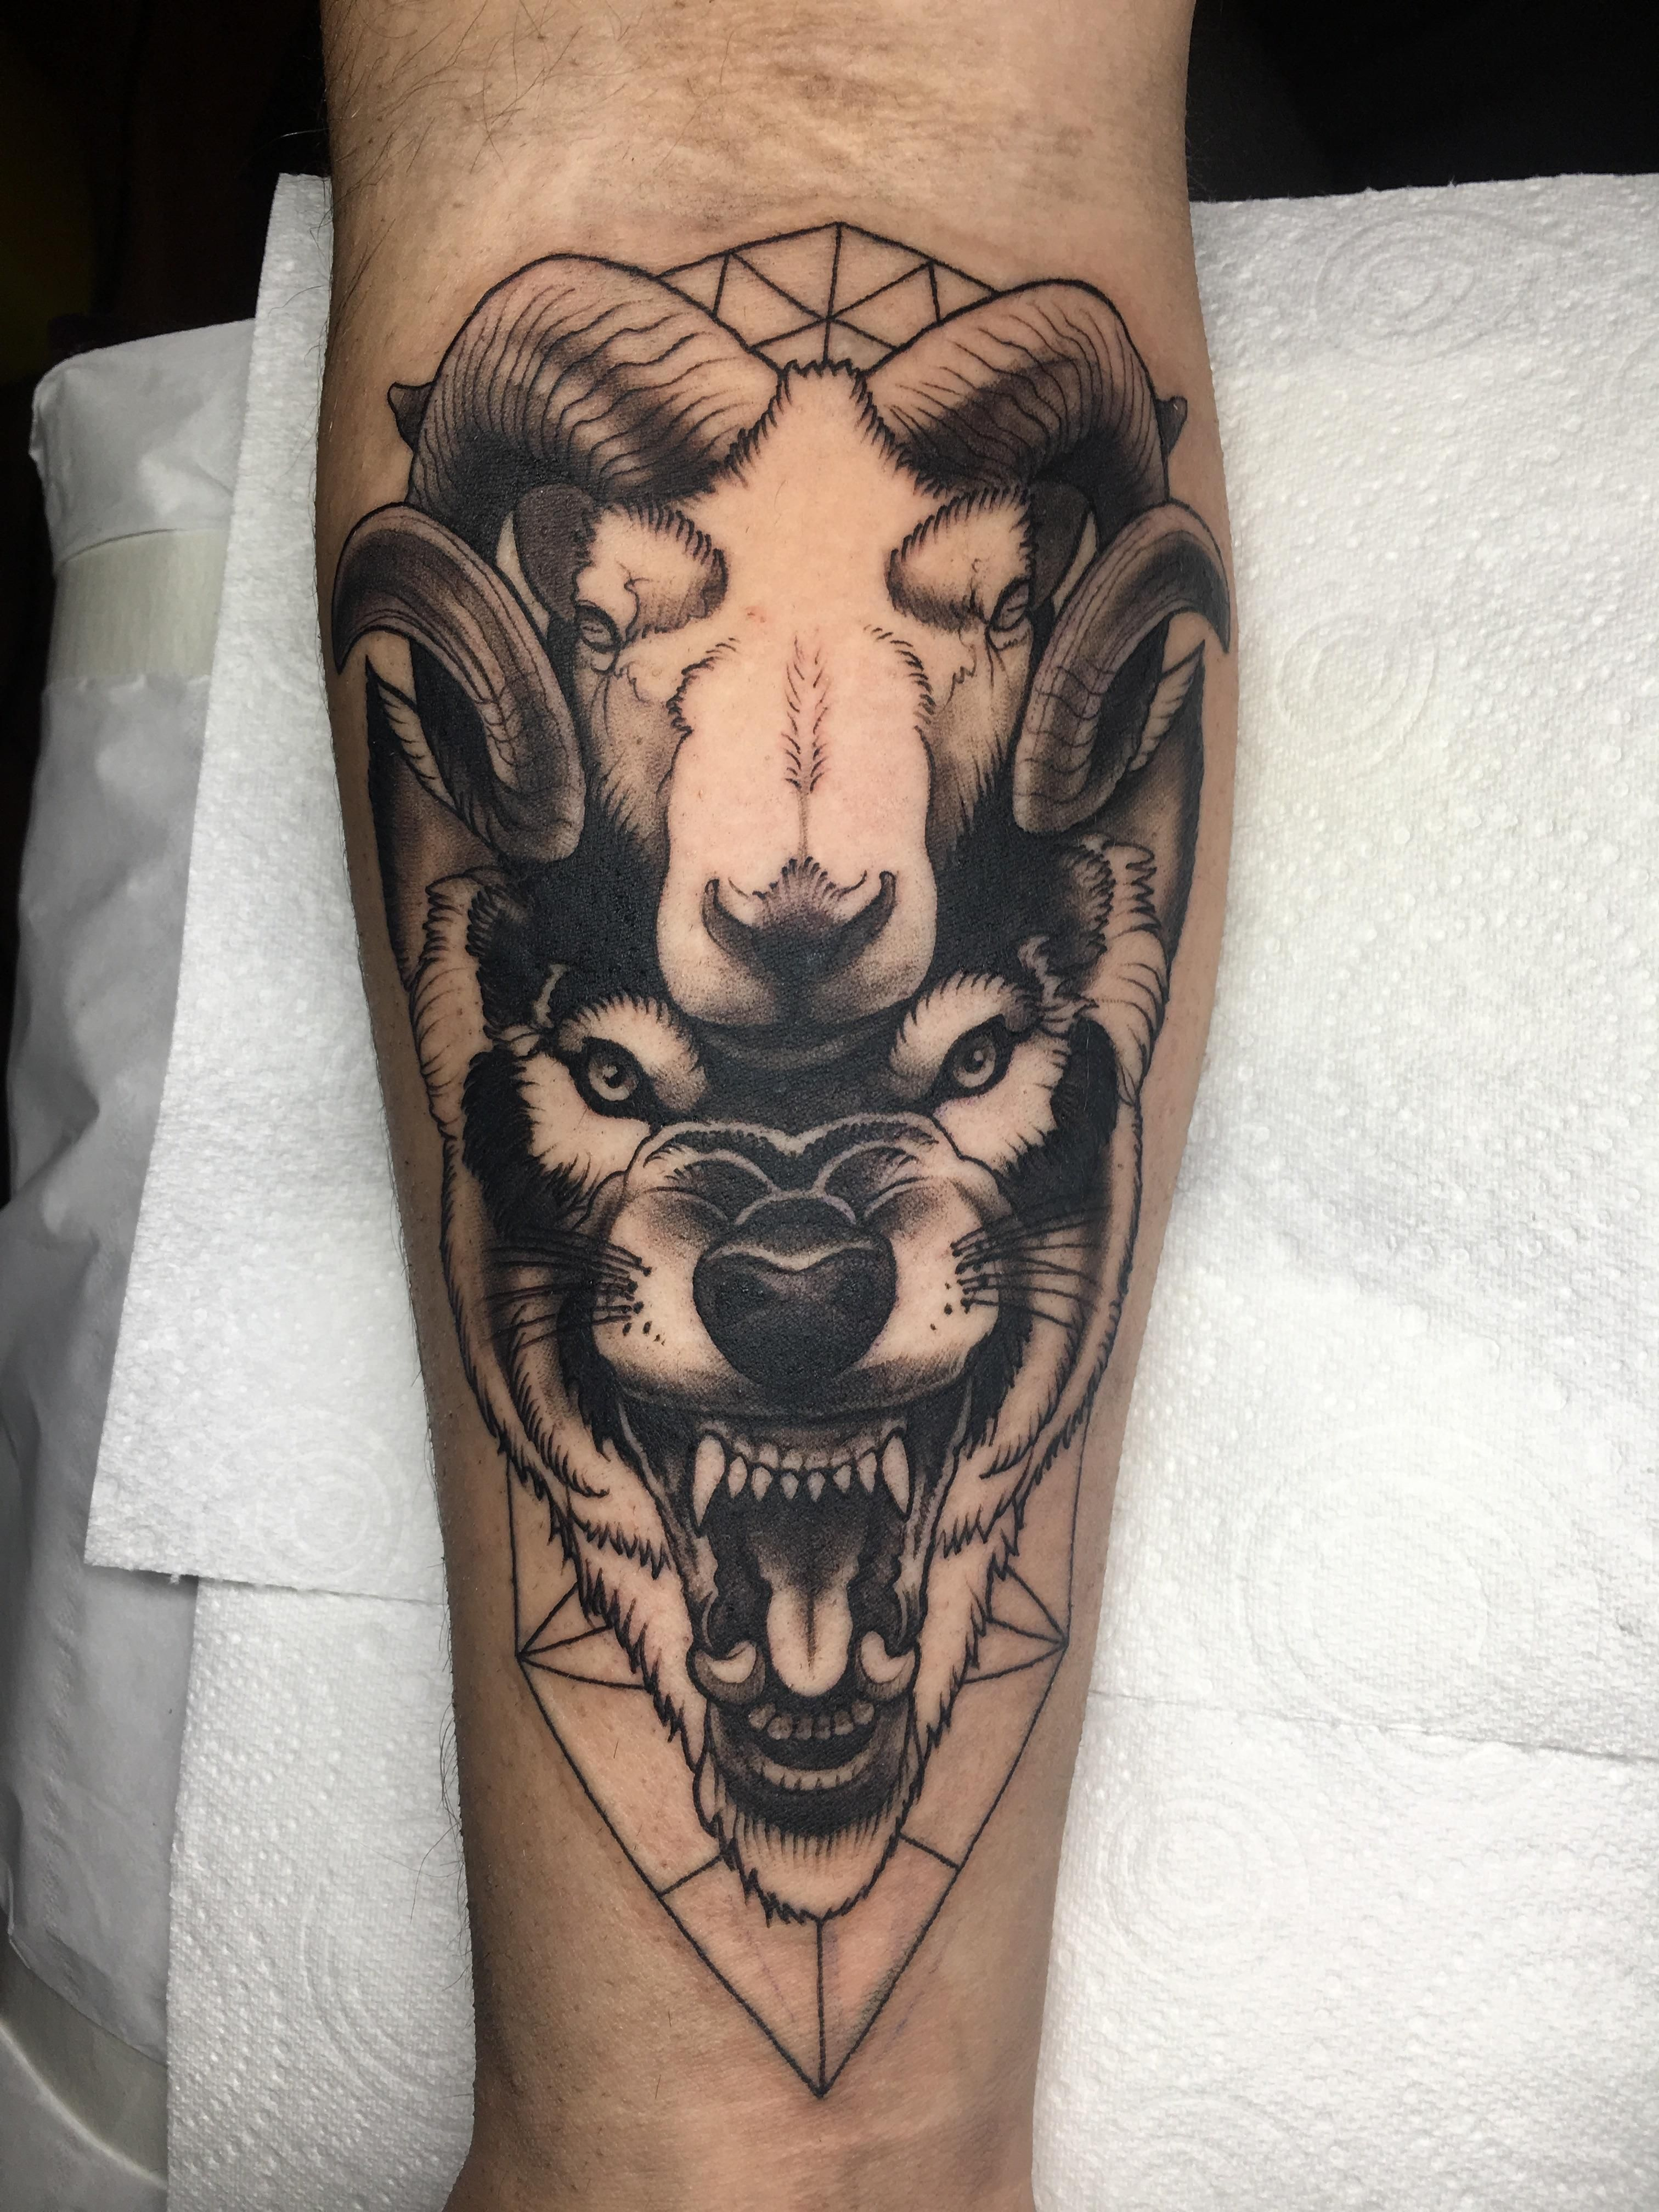 1281 Points And 30 Comments So Far On Reddit Wolf Tattoos Nerd Tattoo Body Art Tattoos